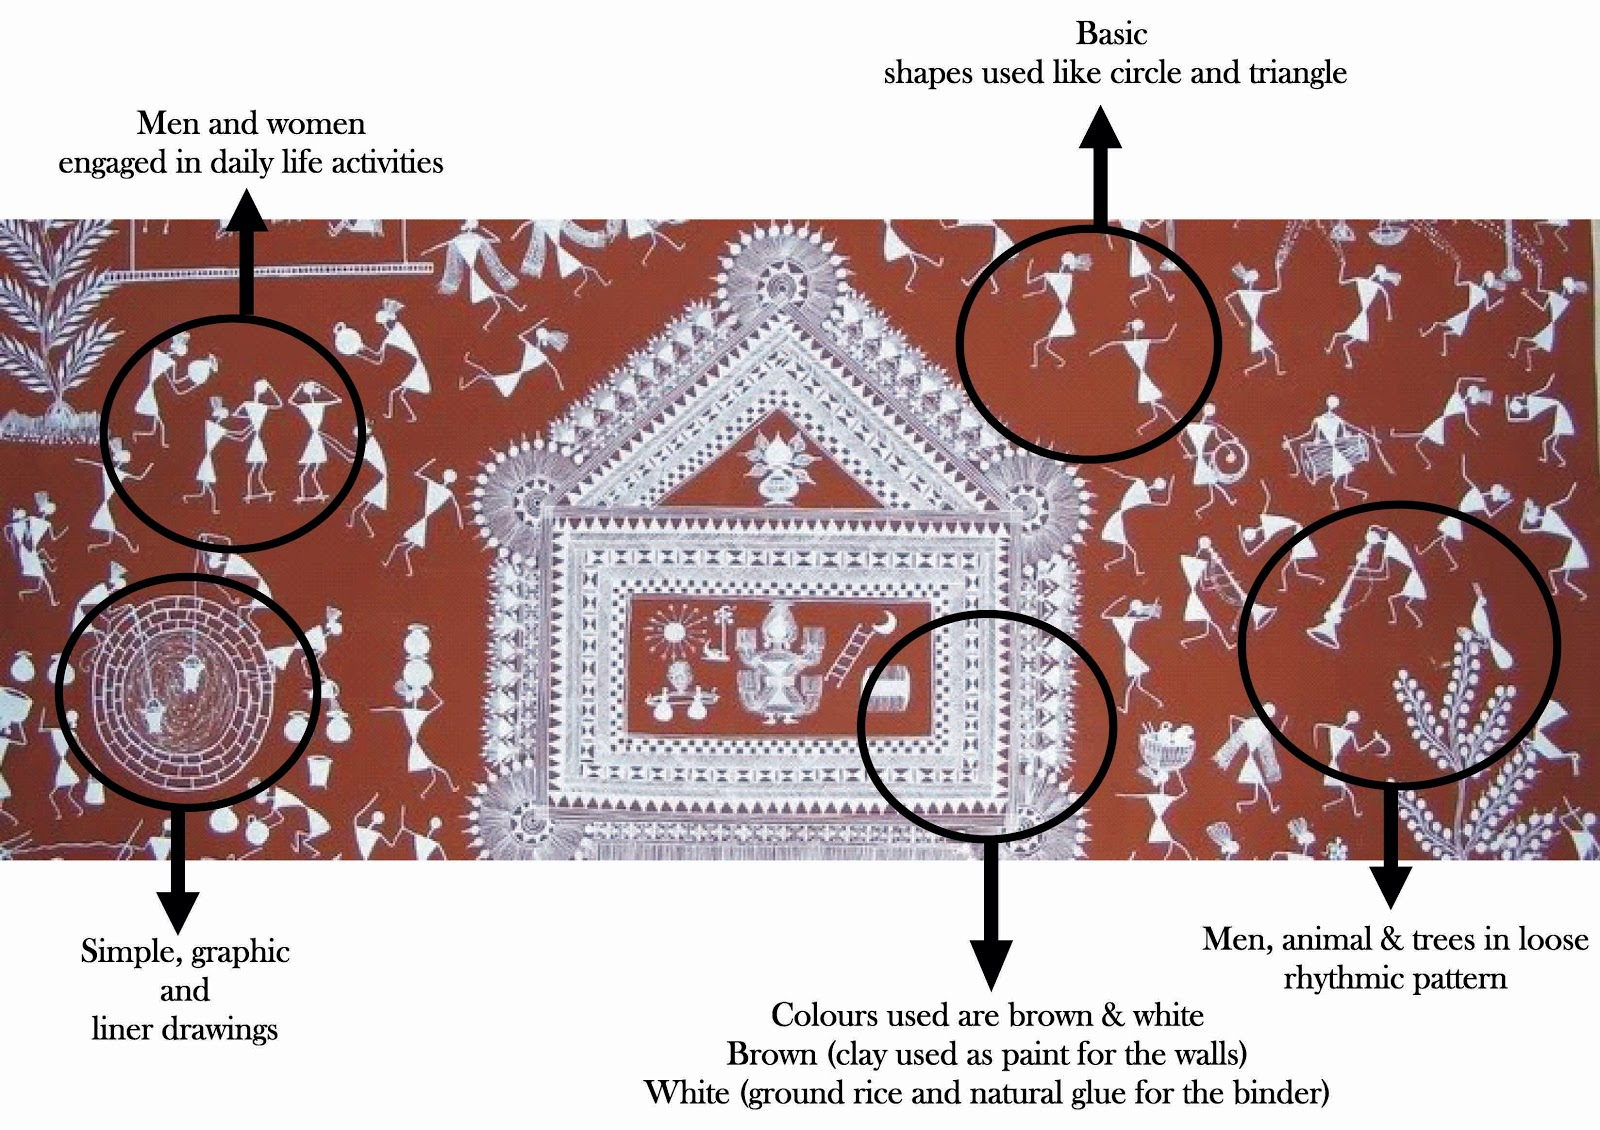 Art junkees warli art folk art grade 2 art junkees of grade 2 decided to inquire about warli art we looked at a lot of visuals of warli art and observed characteristics of the art form altavistaventures Image collections